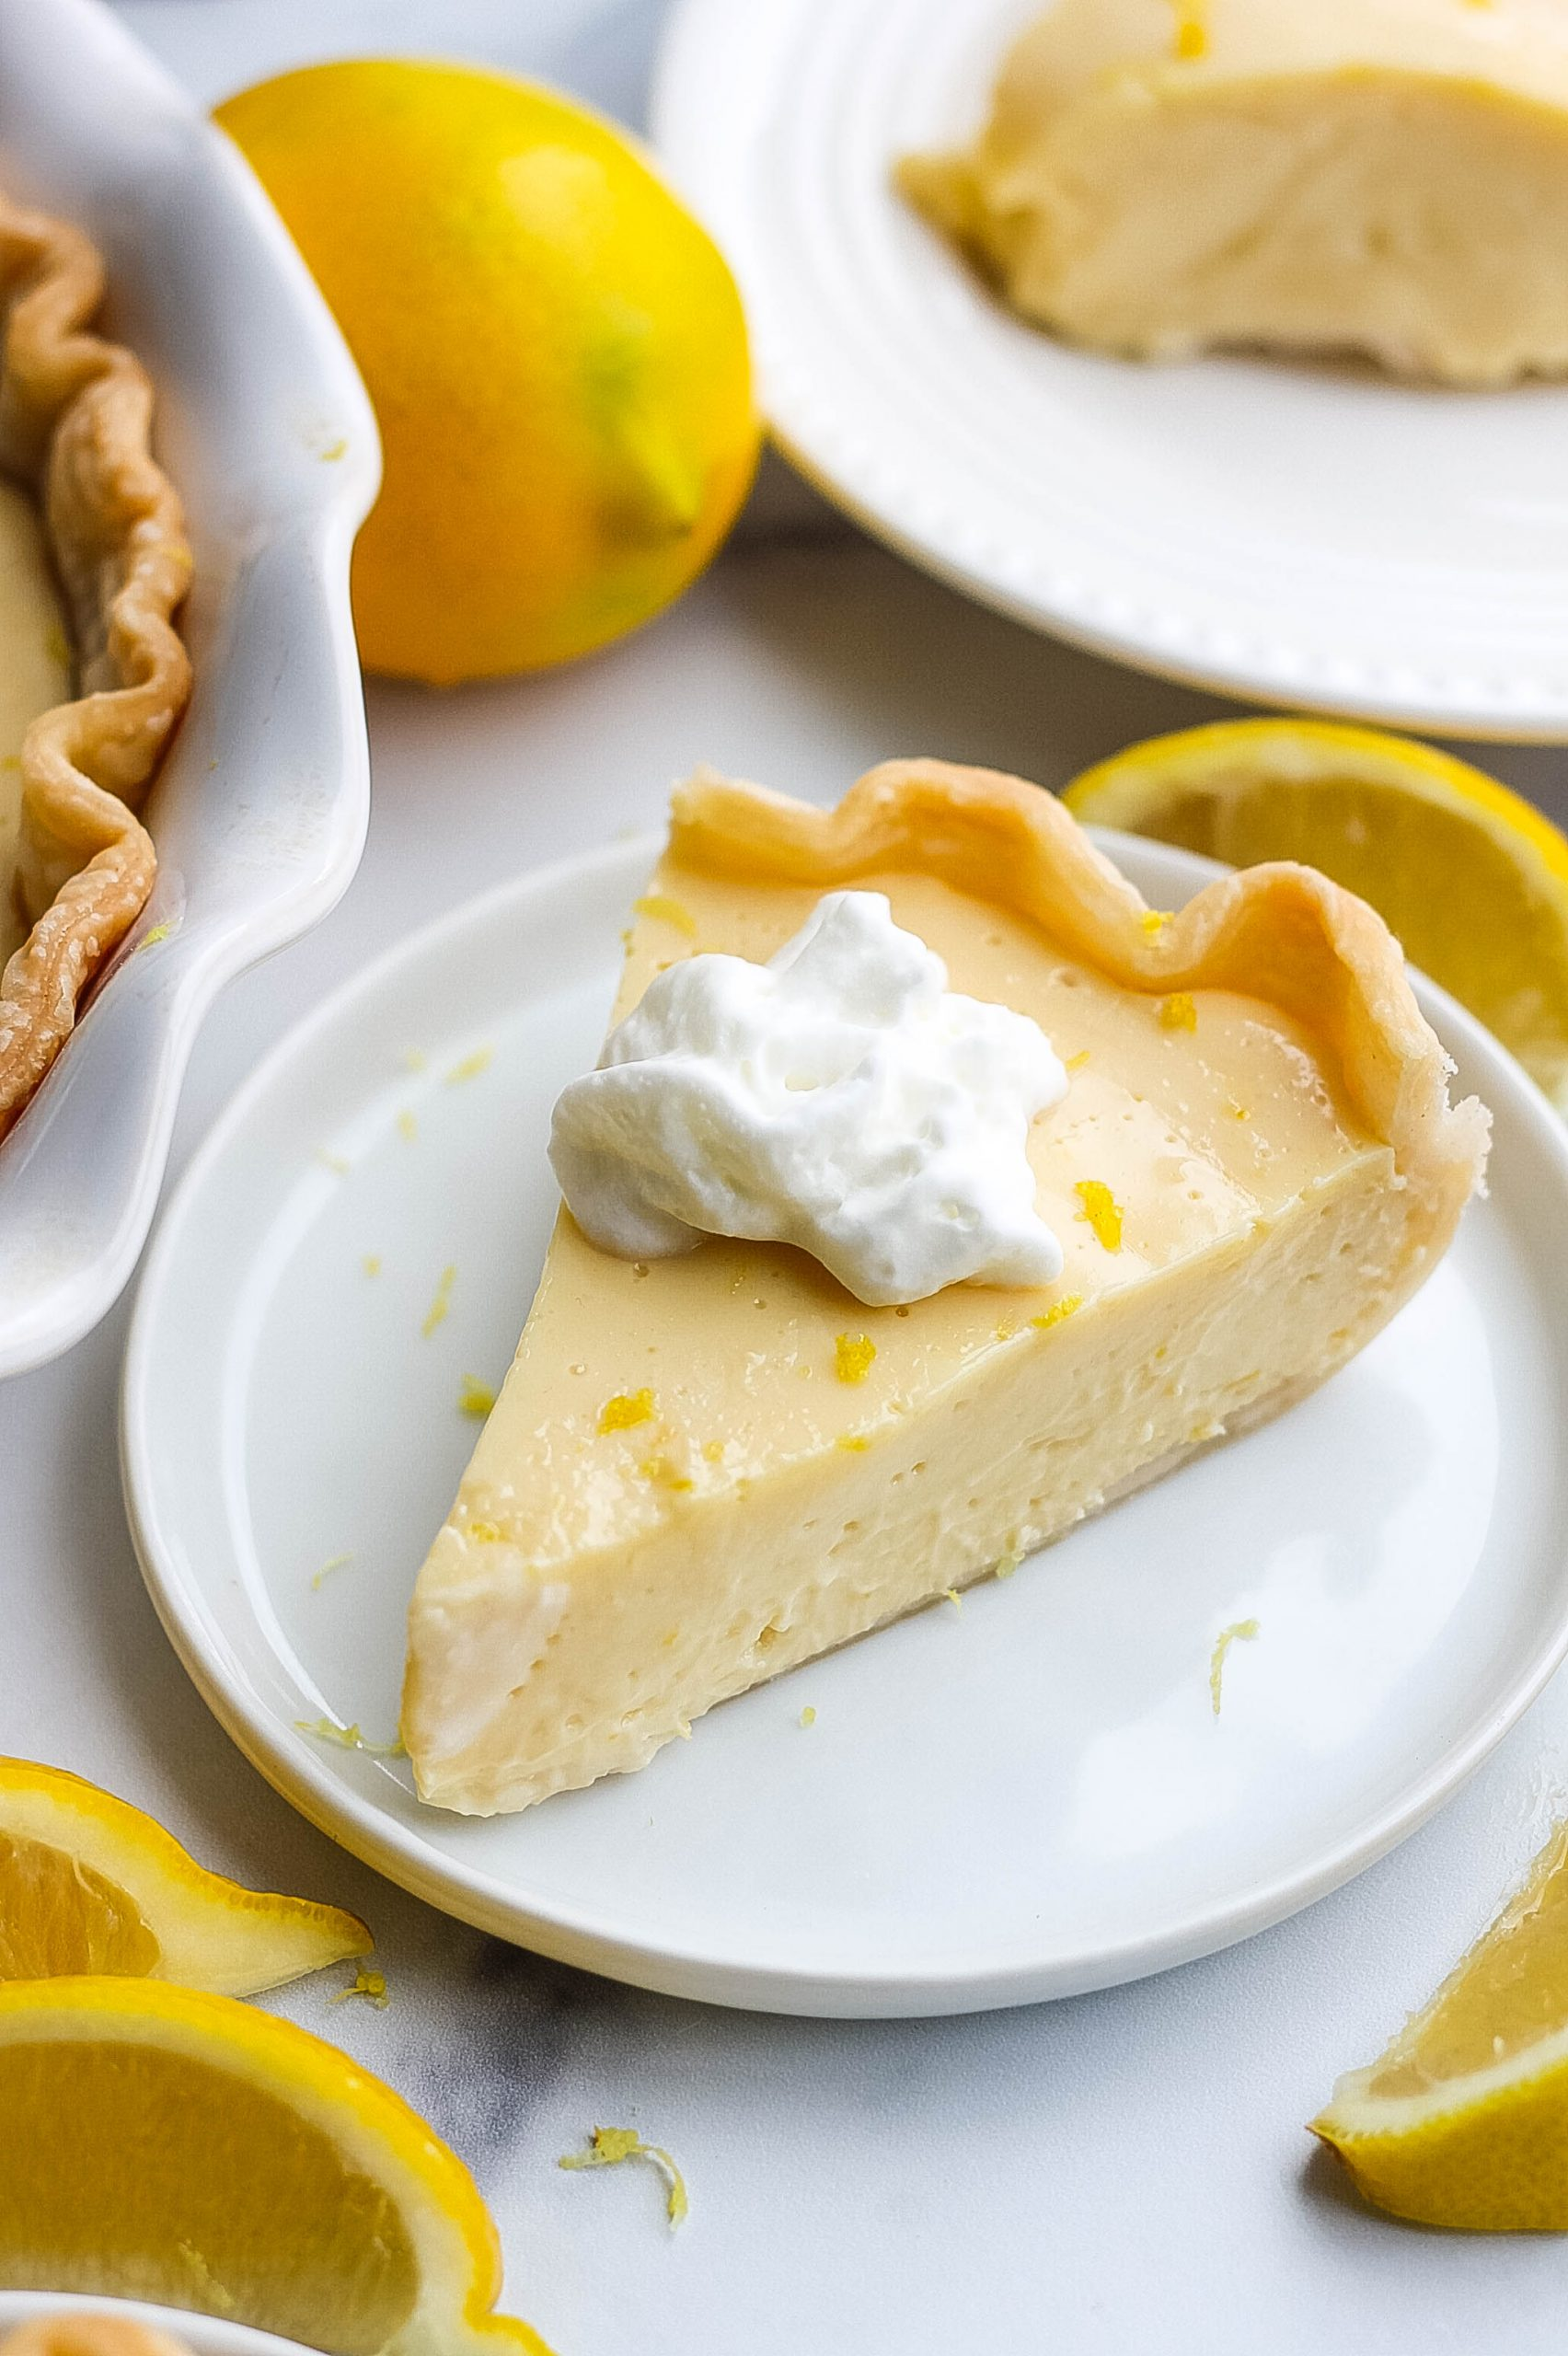 slice of lemon pie with zest and whipped cream